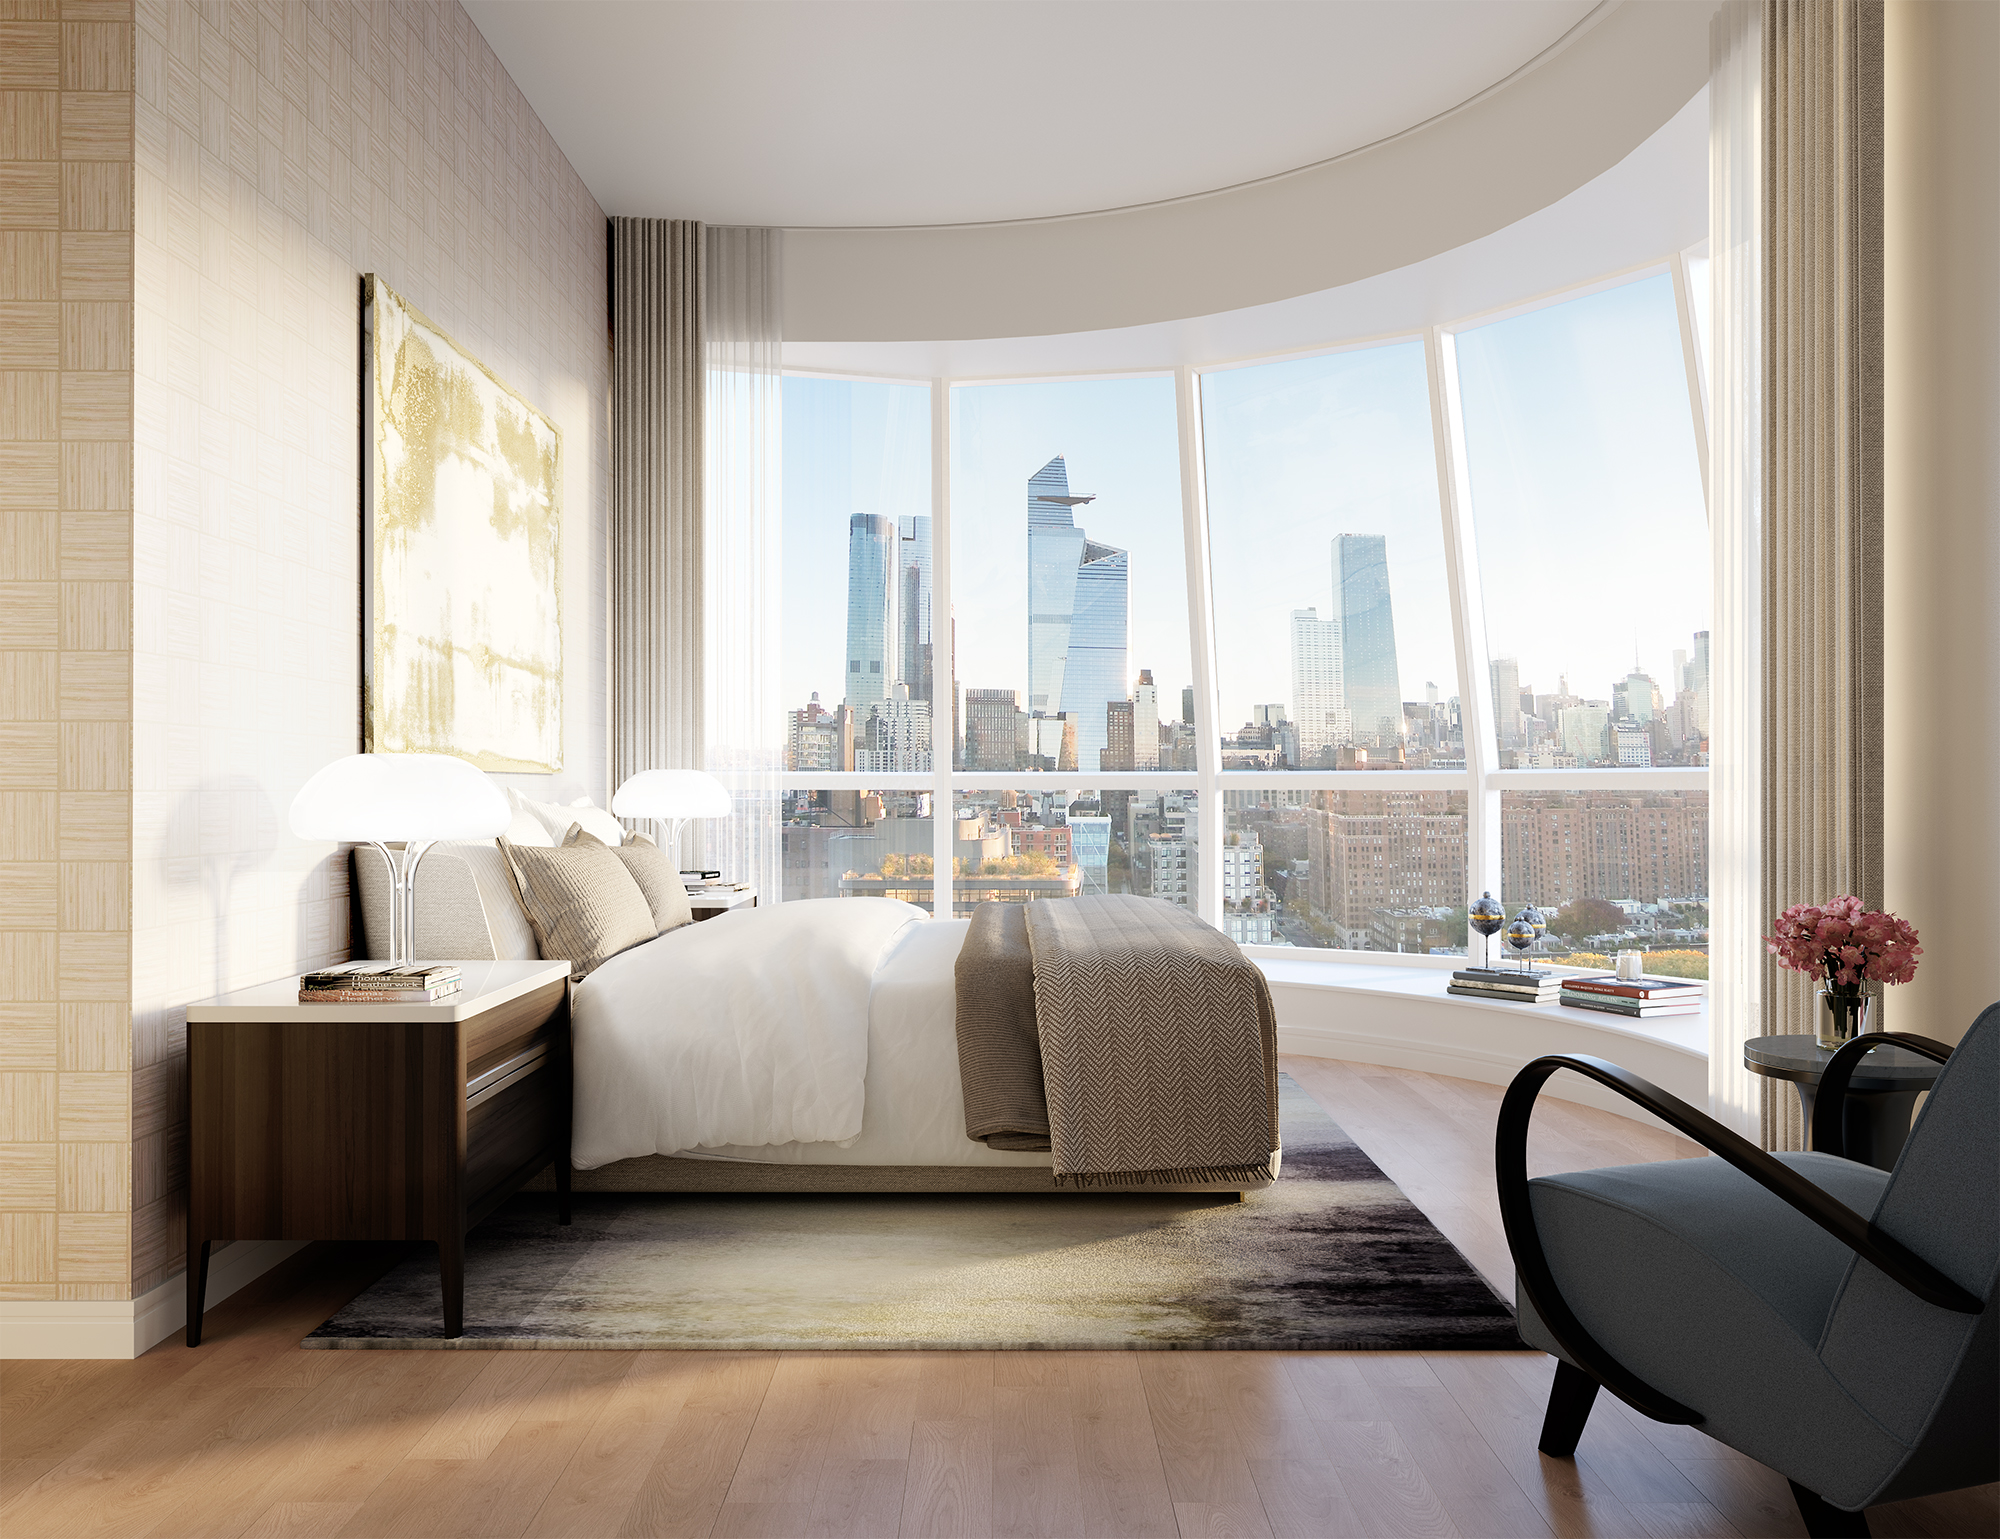 Interior view of Lantern House residence master bedroom with skyline view of NYC. Has wood floors and bed facing the window.